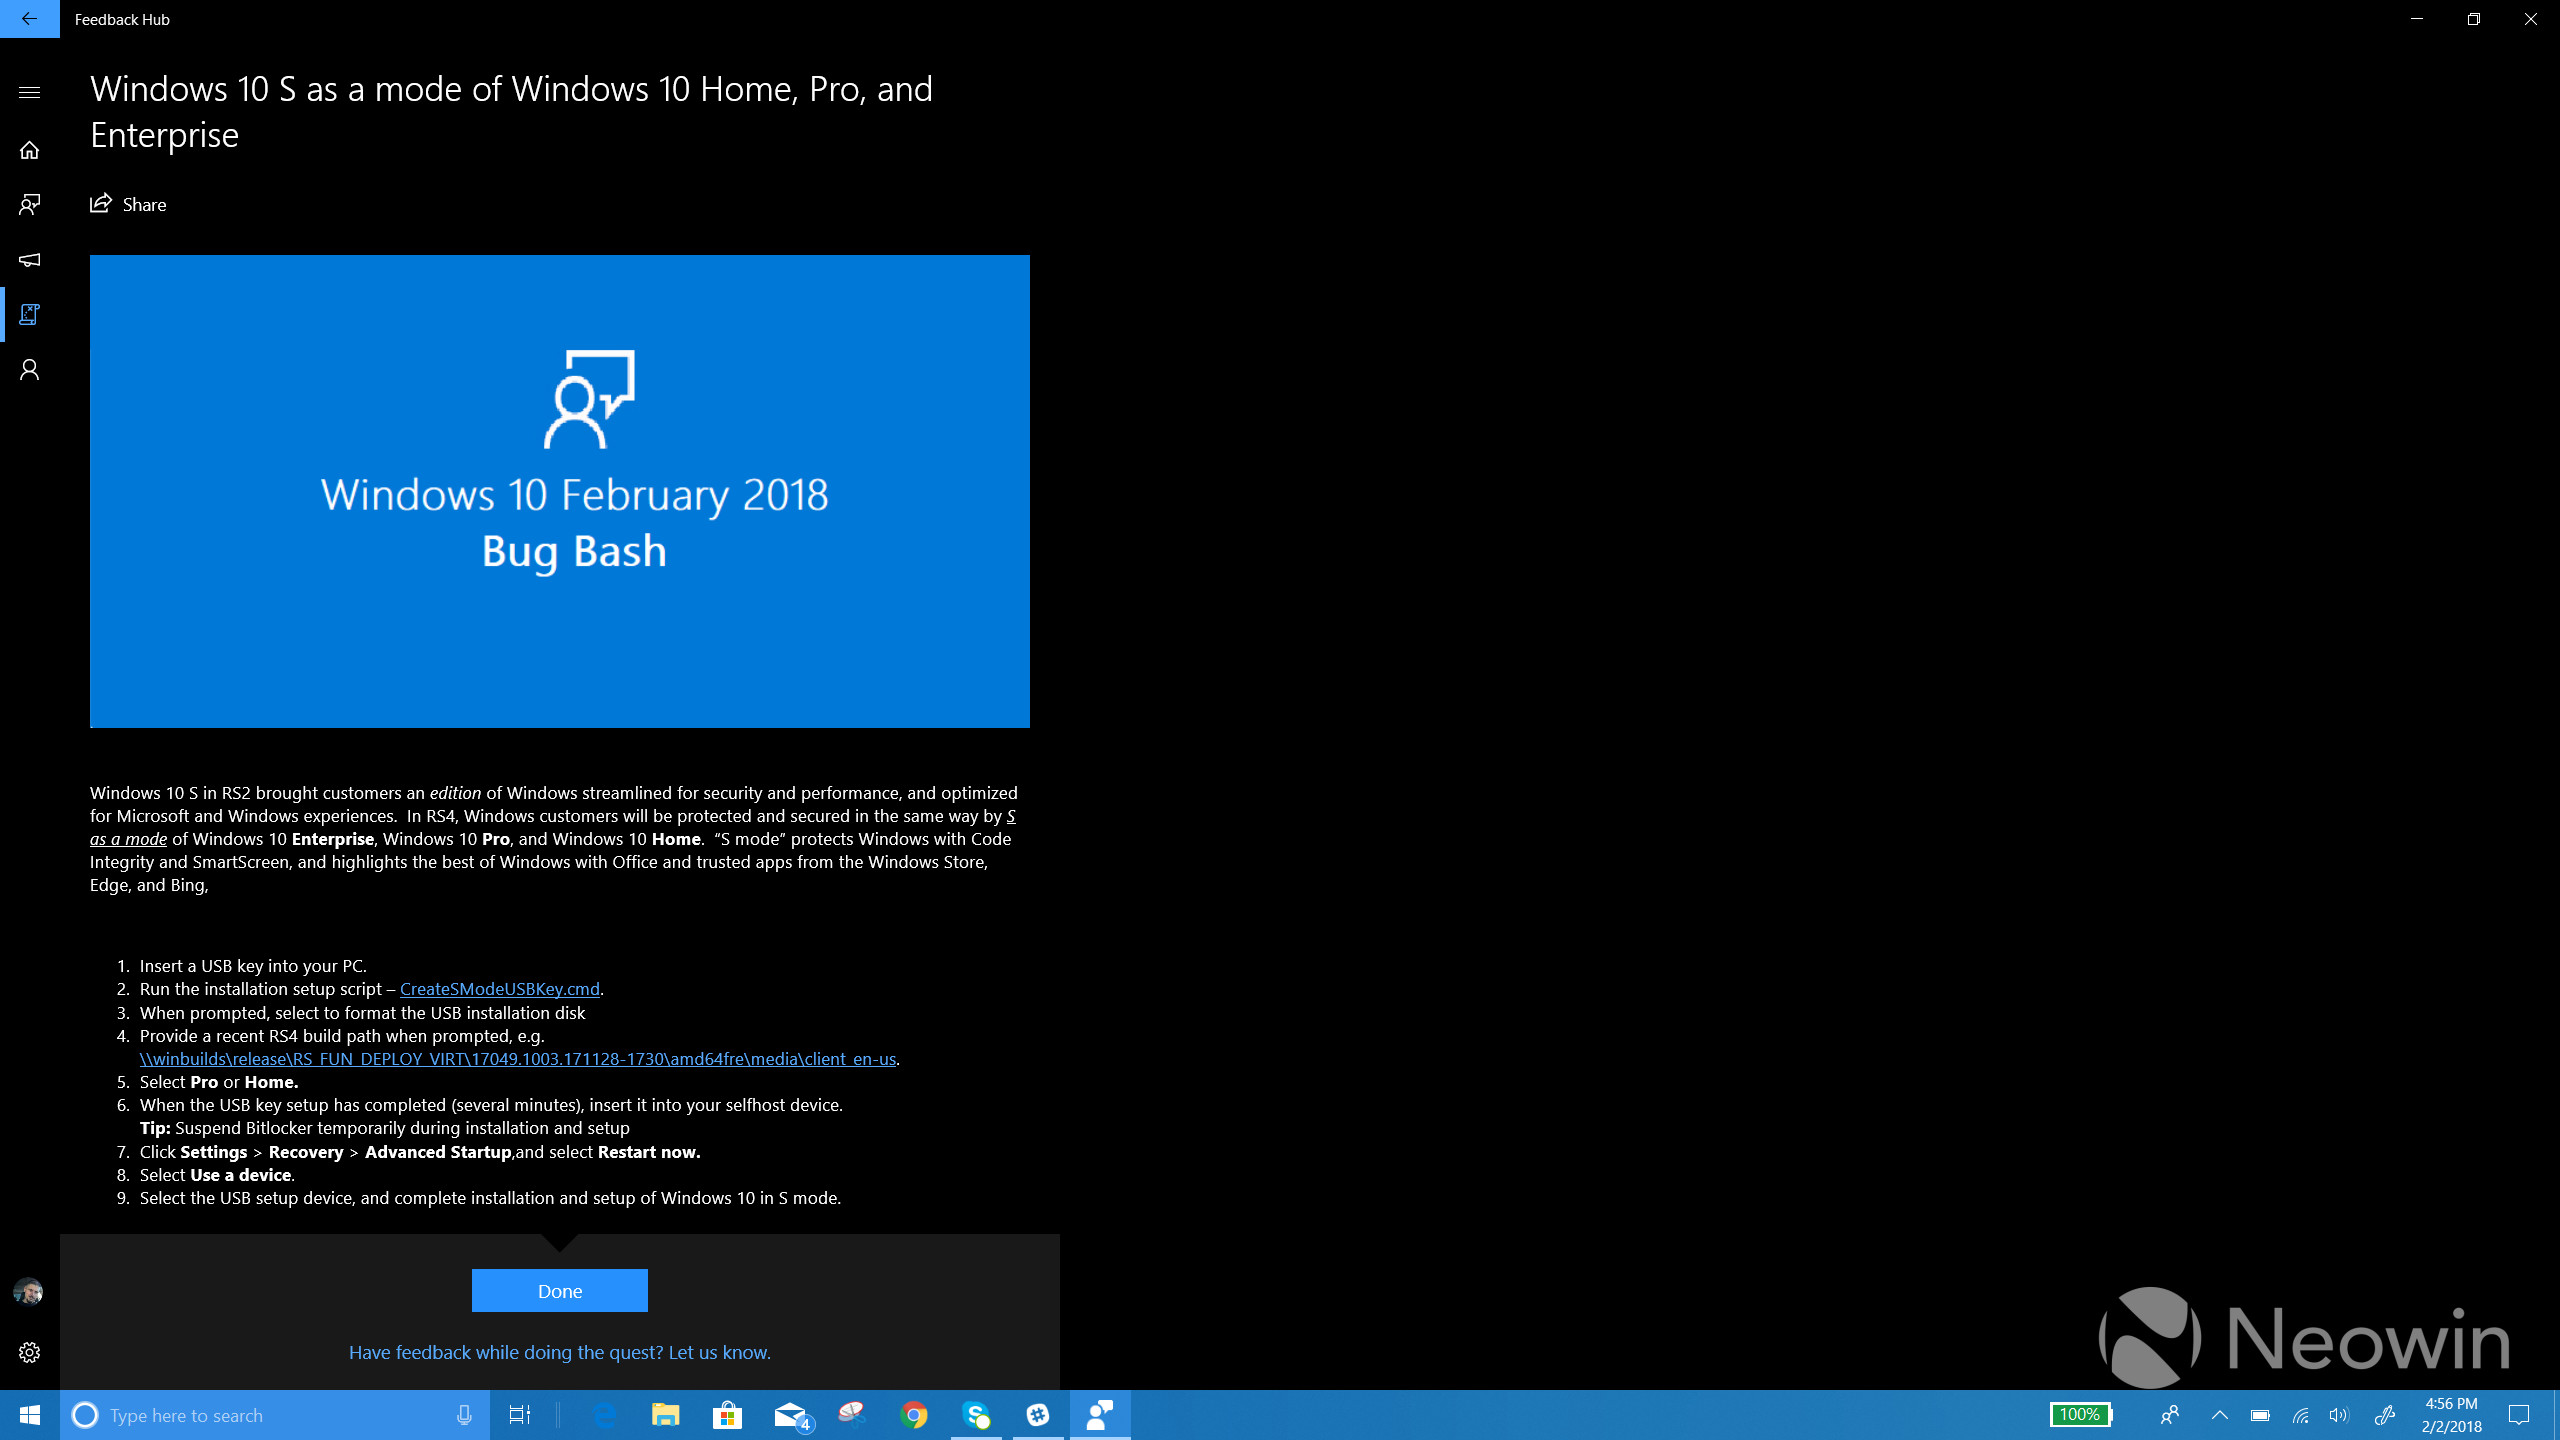 Windows 10 S Mode Coming In 2019, Microsoft Confirms